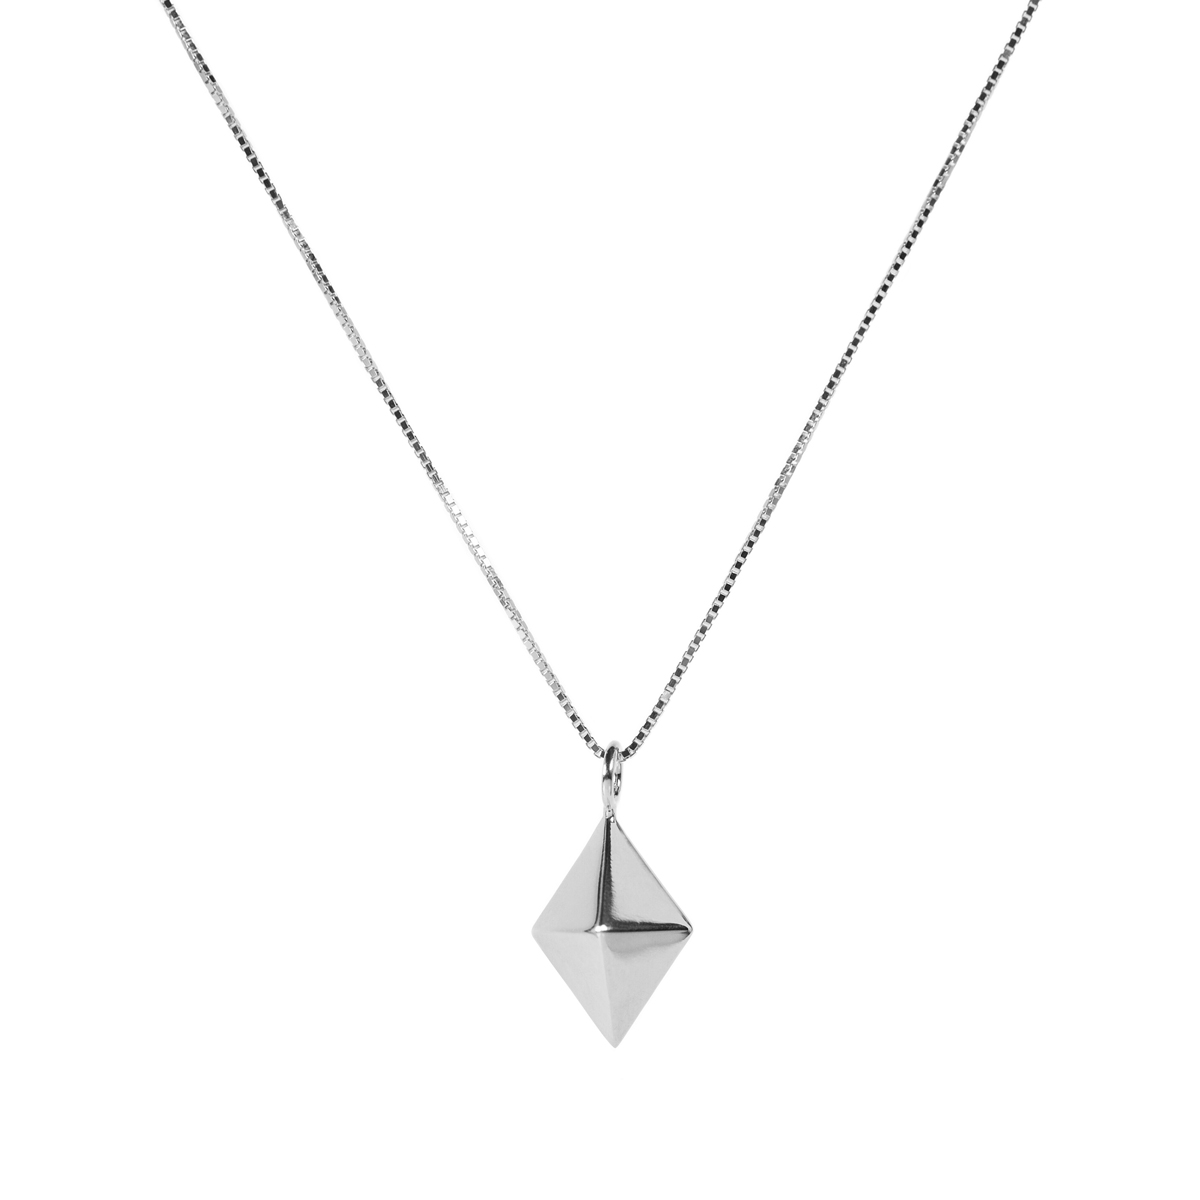 PPG DIAMOND NECKLACE SILVER LARGE  in the group NECKLACES at EMMA ISRAELSSON (neck113)